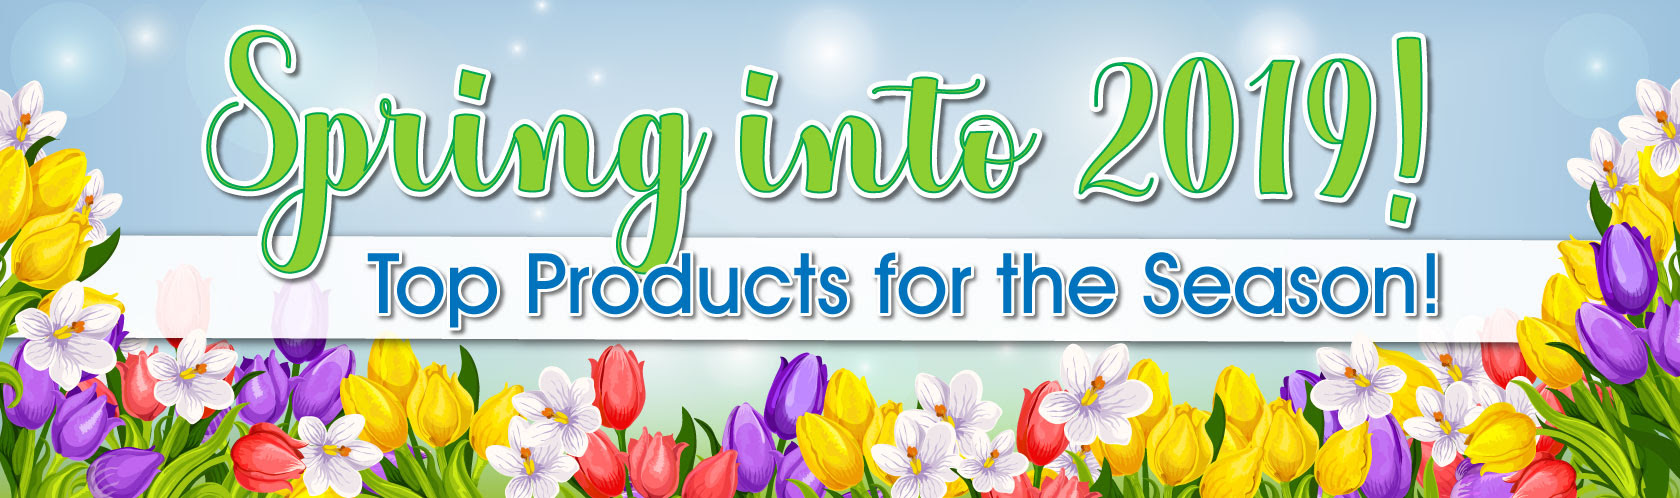 Spring into 2019! Top Products for the Season!